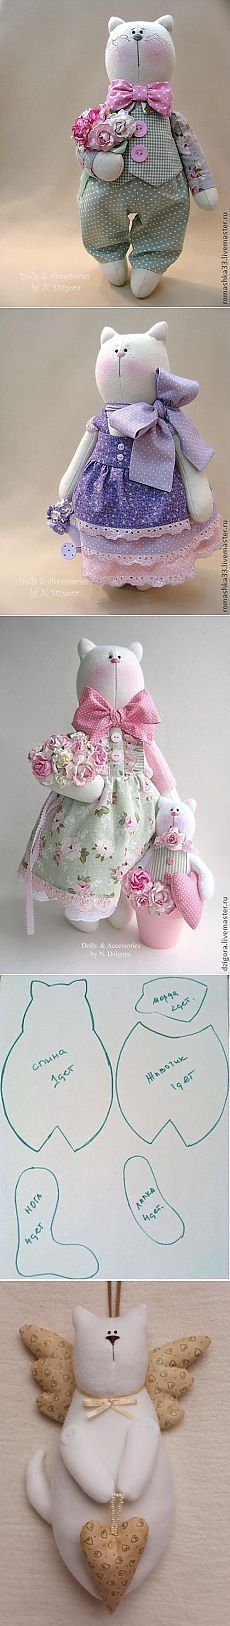 Sewing Toys, Sewing Crafts, Sewing Projects, Sewing Stuffed Animals, Stuffed Animal Patterns, Doll Clothes Patterns, Doll Patterns, Fabric Animals, Fabric Toys